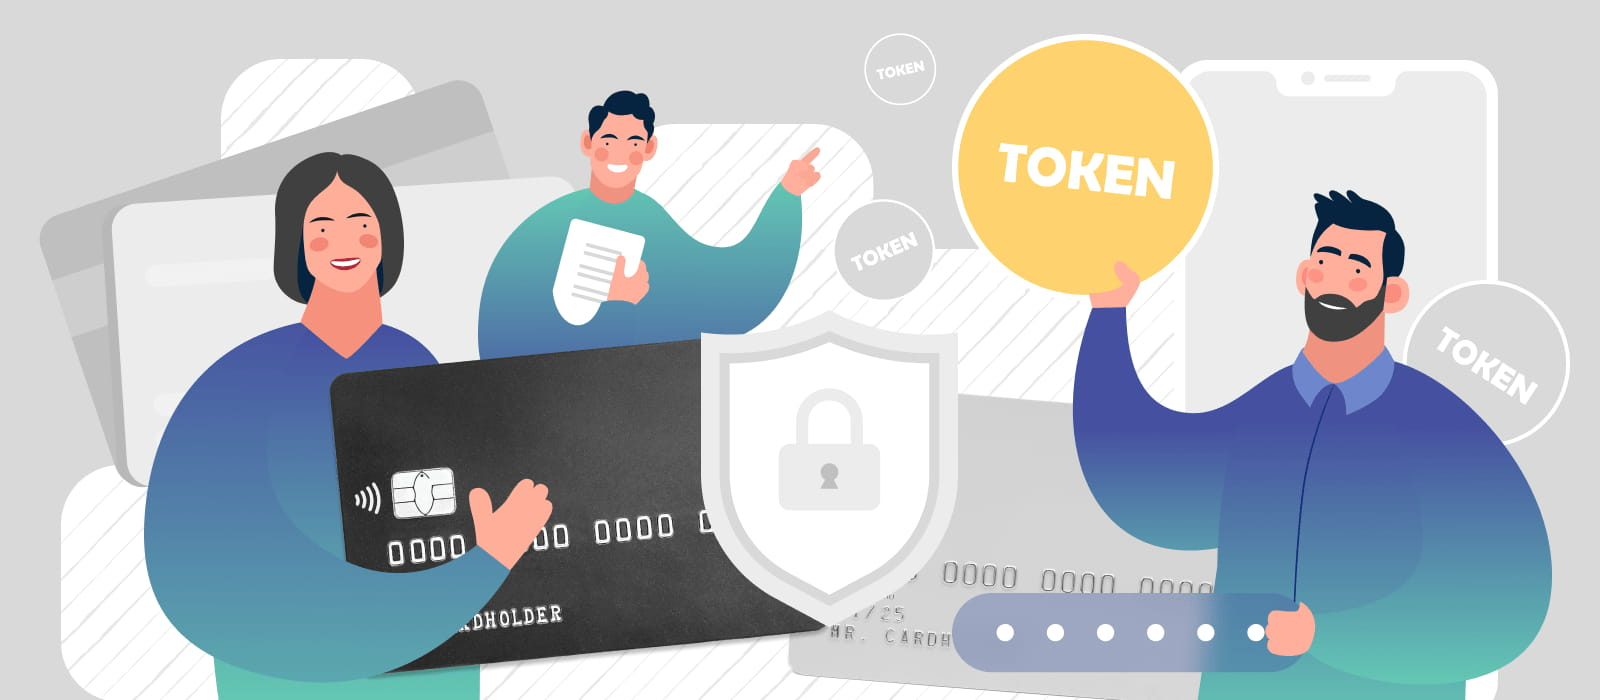 What Is Credit Card Tokenization and How Does It Work?